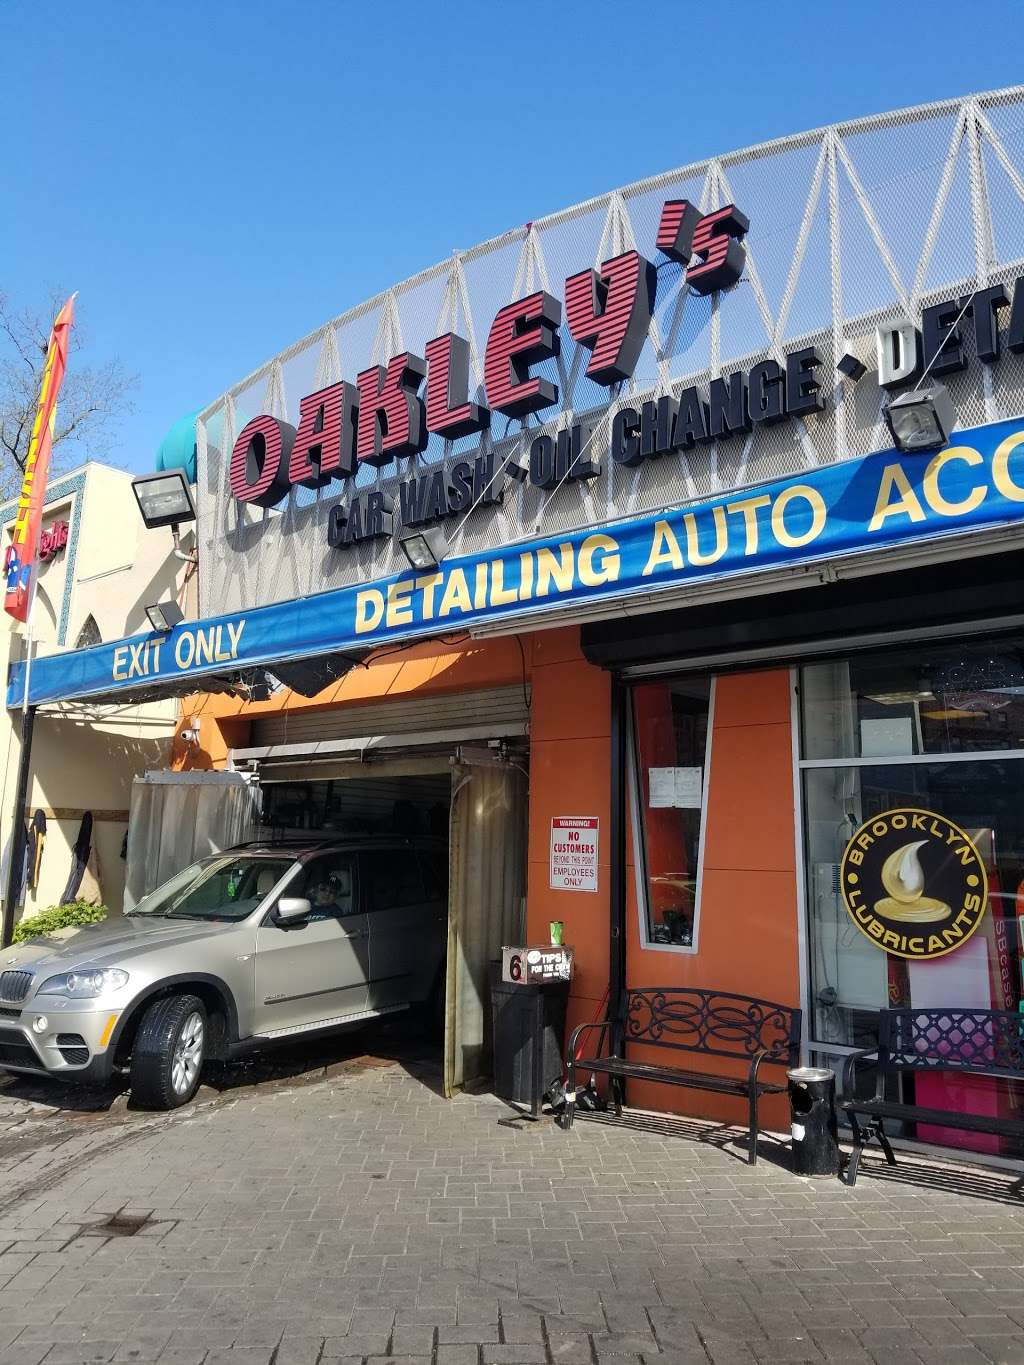 Oakleys Car Wash, Oil Change & Detail Center - car wash  | Photo 8 of 10 | Address: 25 Neptune Ave, Brooklyn, NY 11235, USA | Phone: (718) 646-8783